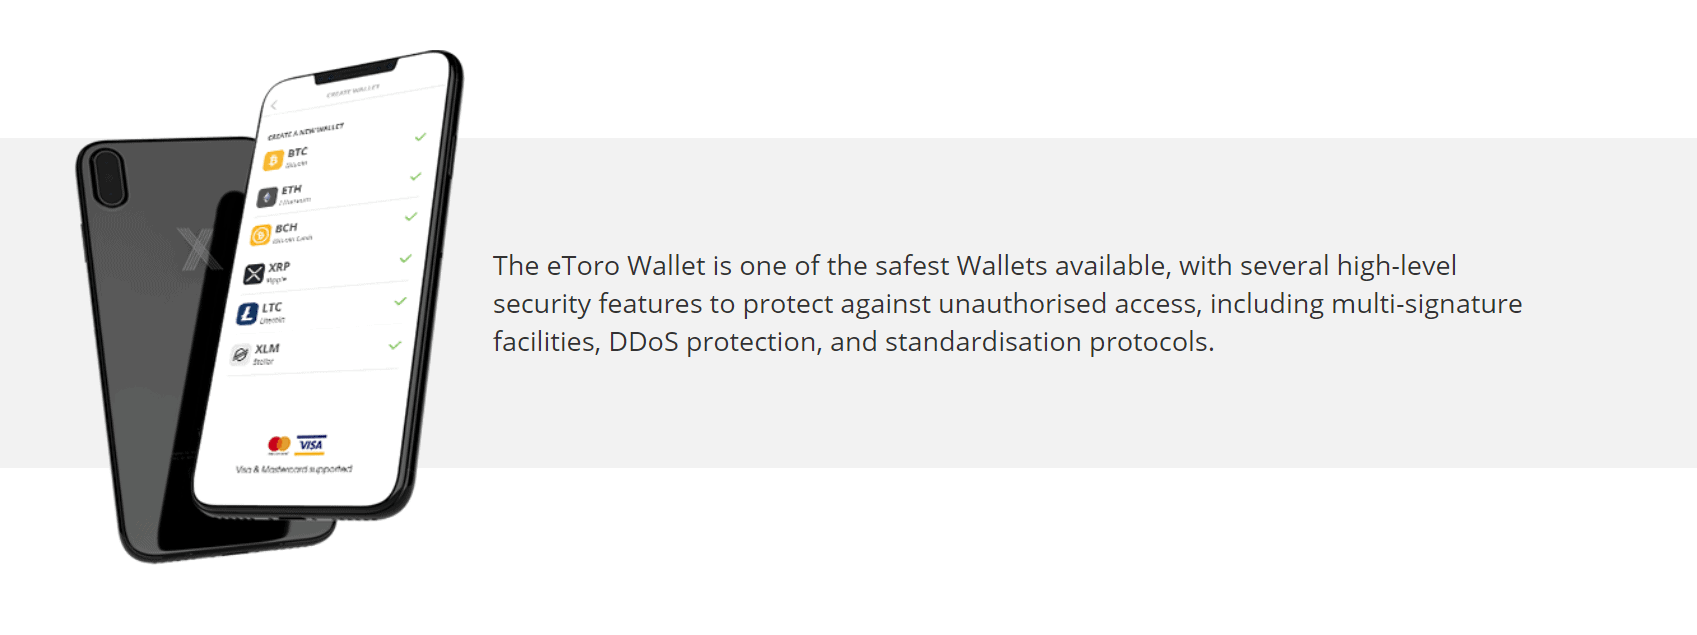 etoro wallet security